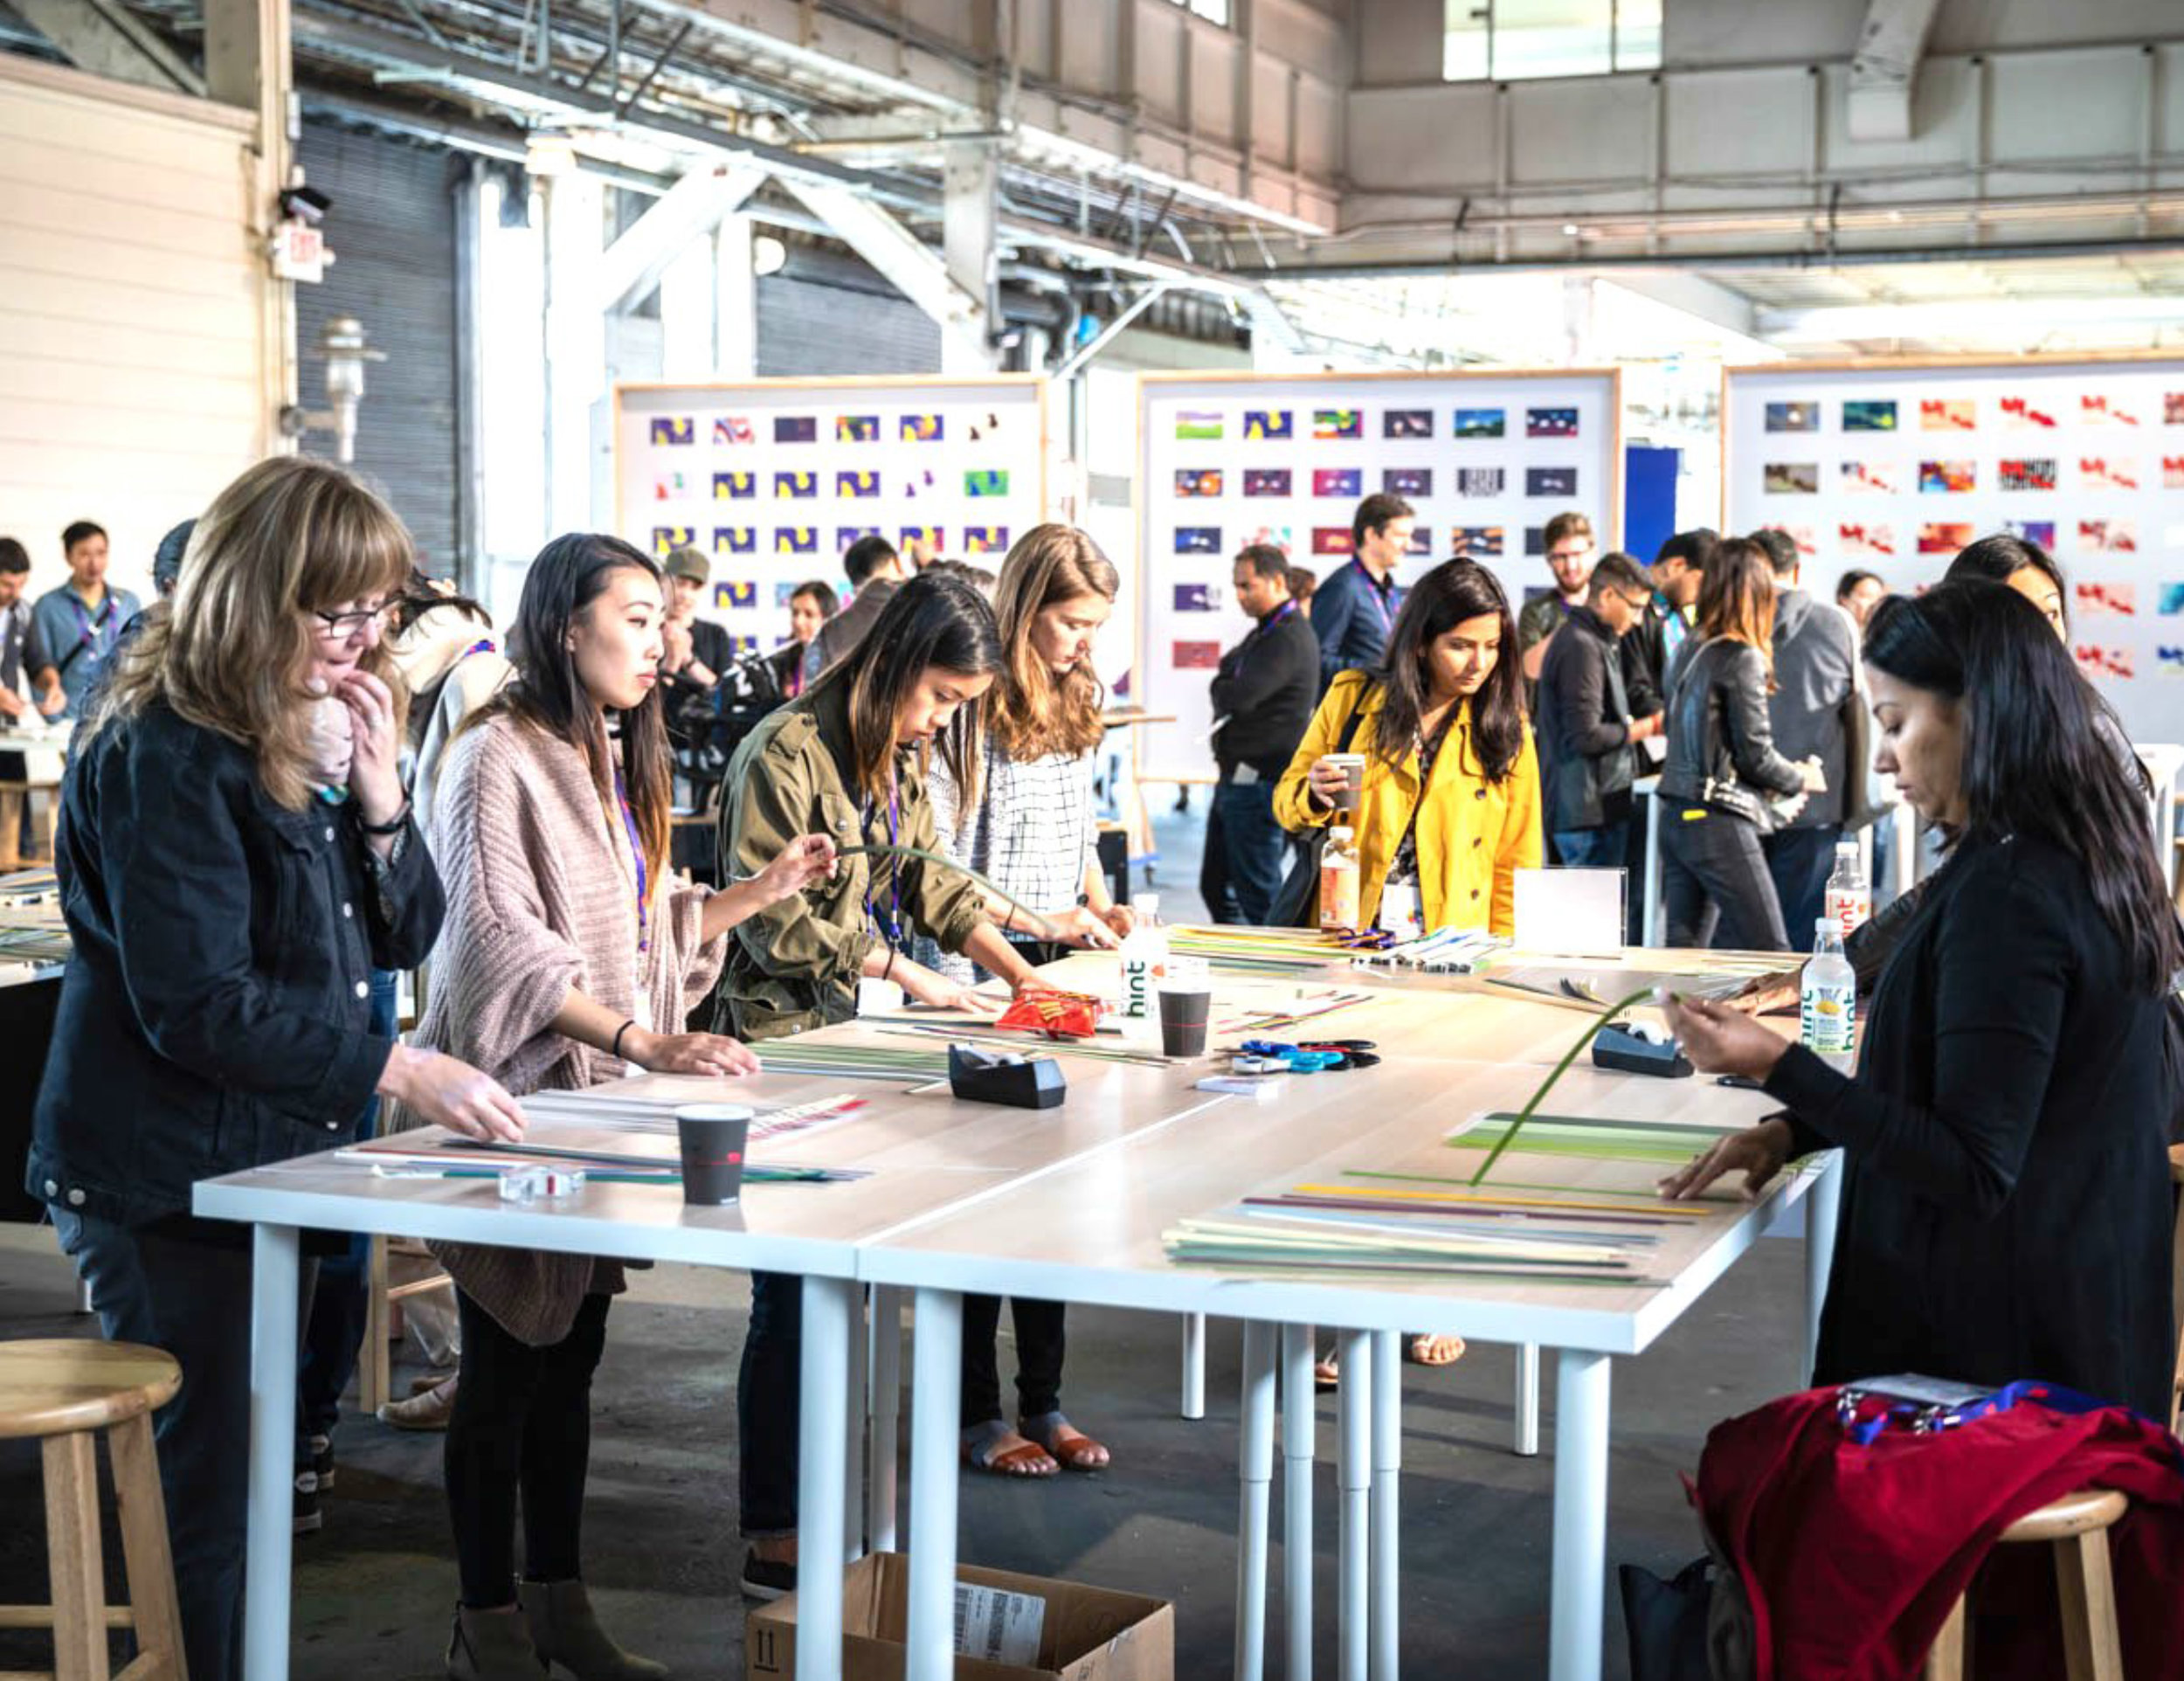 Preview Events - Adobe Design Summit - San Francisco - Brand design - conference design - pier 35 - makerspace.jpg